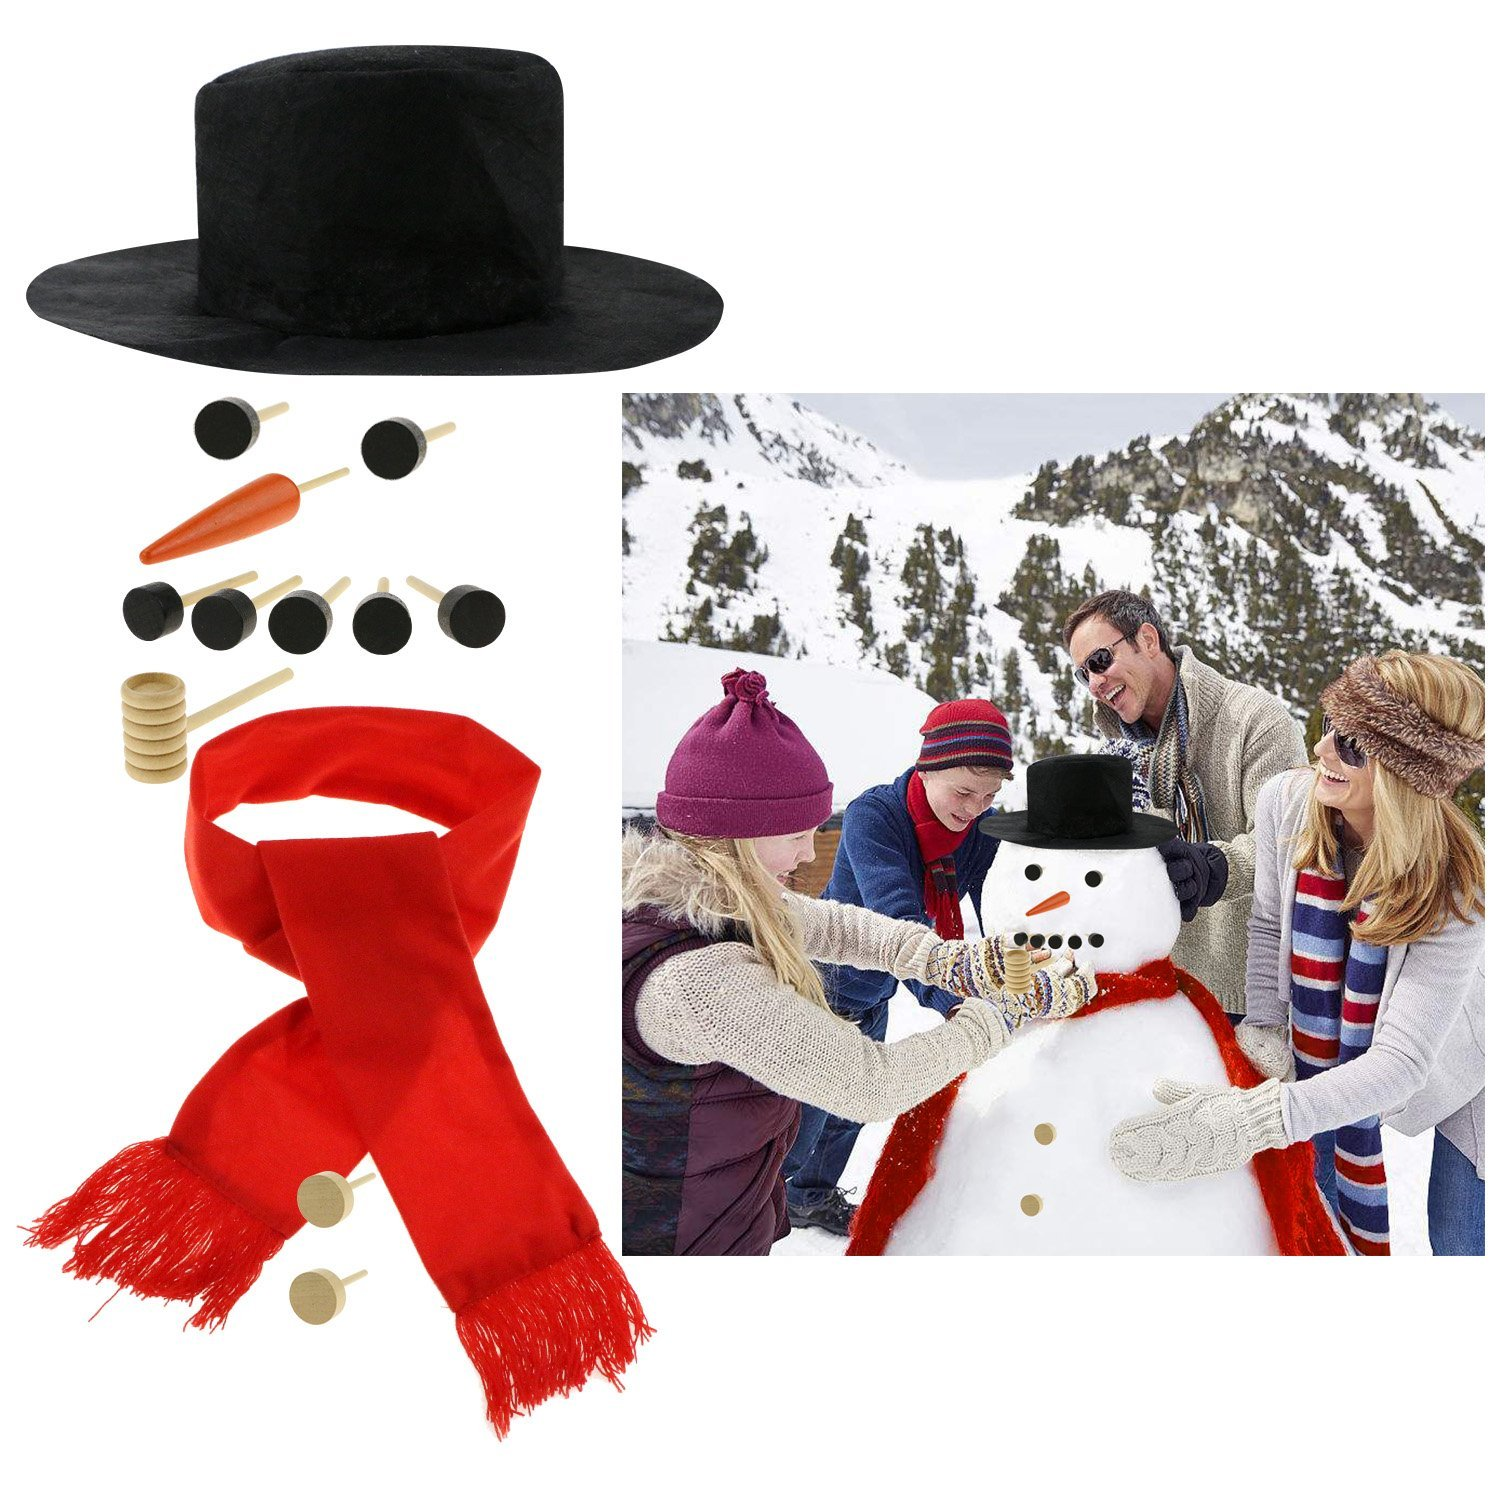 Fixget 13 Pcs Snowman Decorating Kit, Snowman Making Kit Snowman Dressing Kit Winter Outdoor Fun Toys Decoration for Kids, Including Top Hat, Scarf, Pipe, Eyes, Carrot Nose & Button